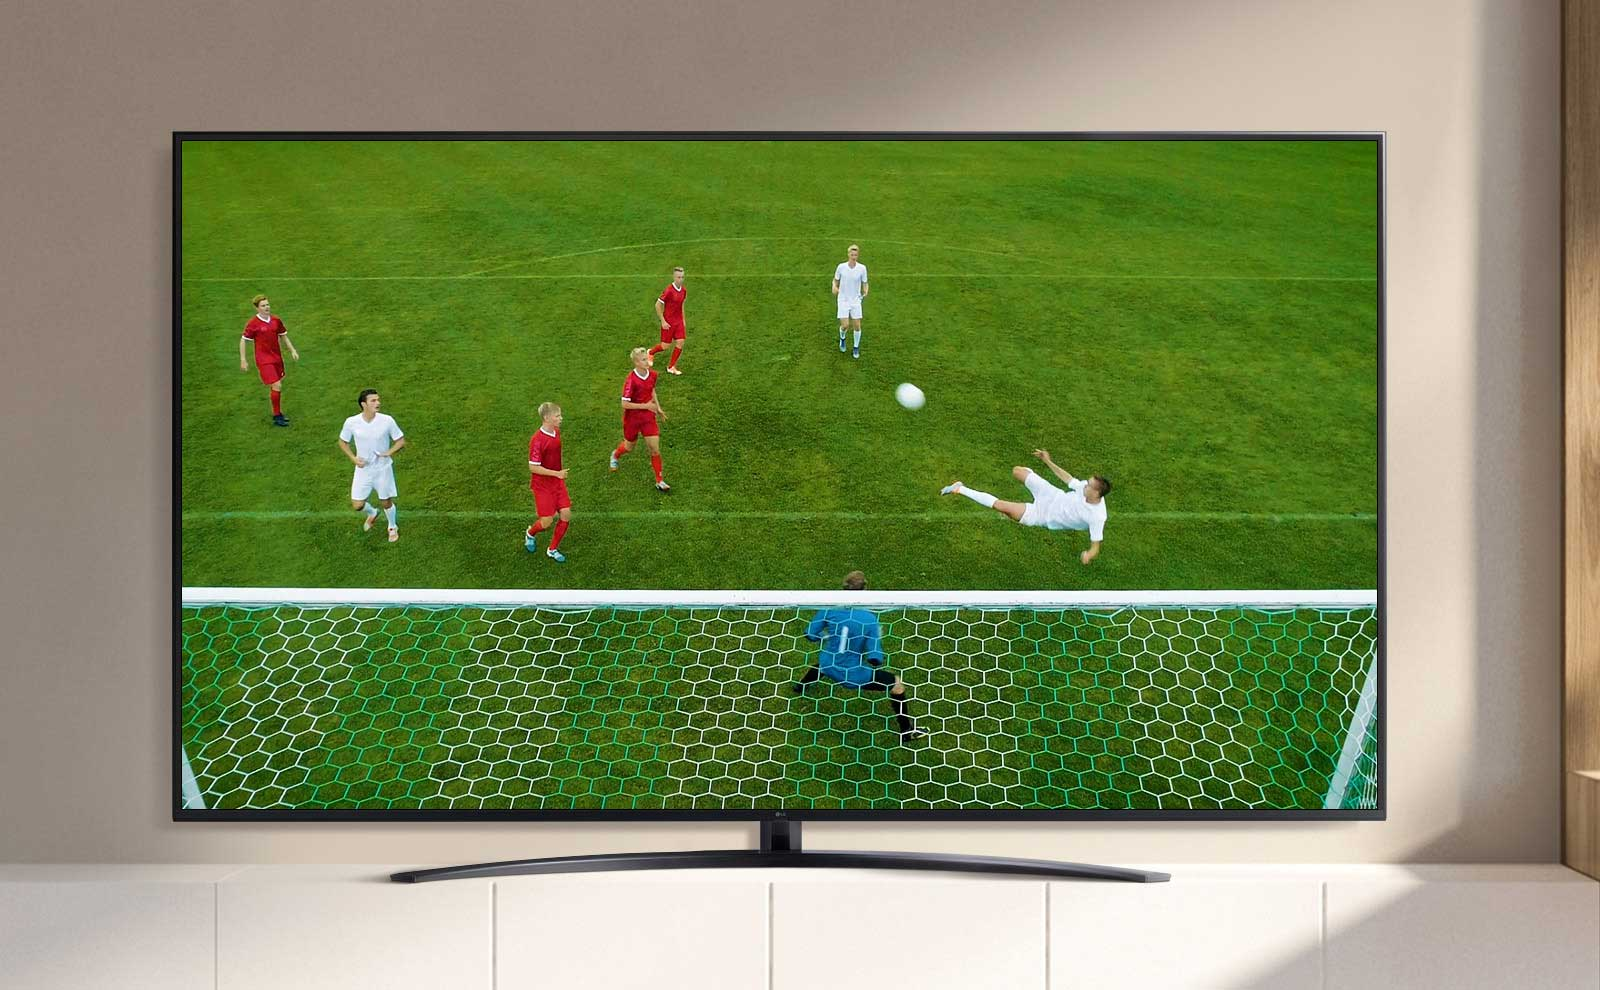 A TV screen playing a video of a soccer player making a goal during a soccer game. (play the video)